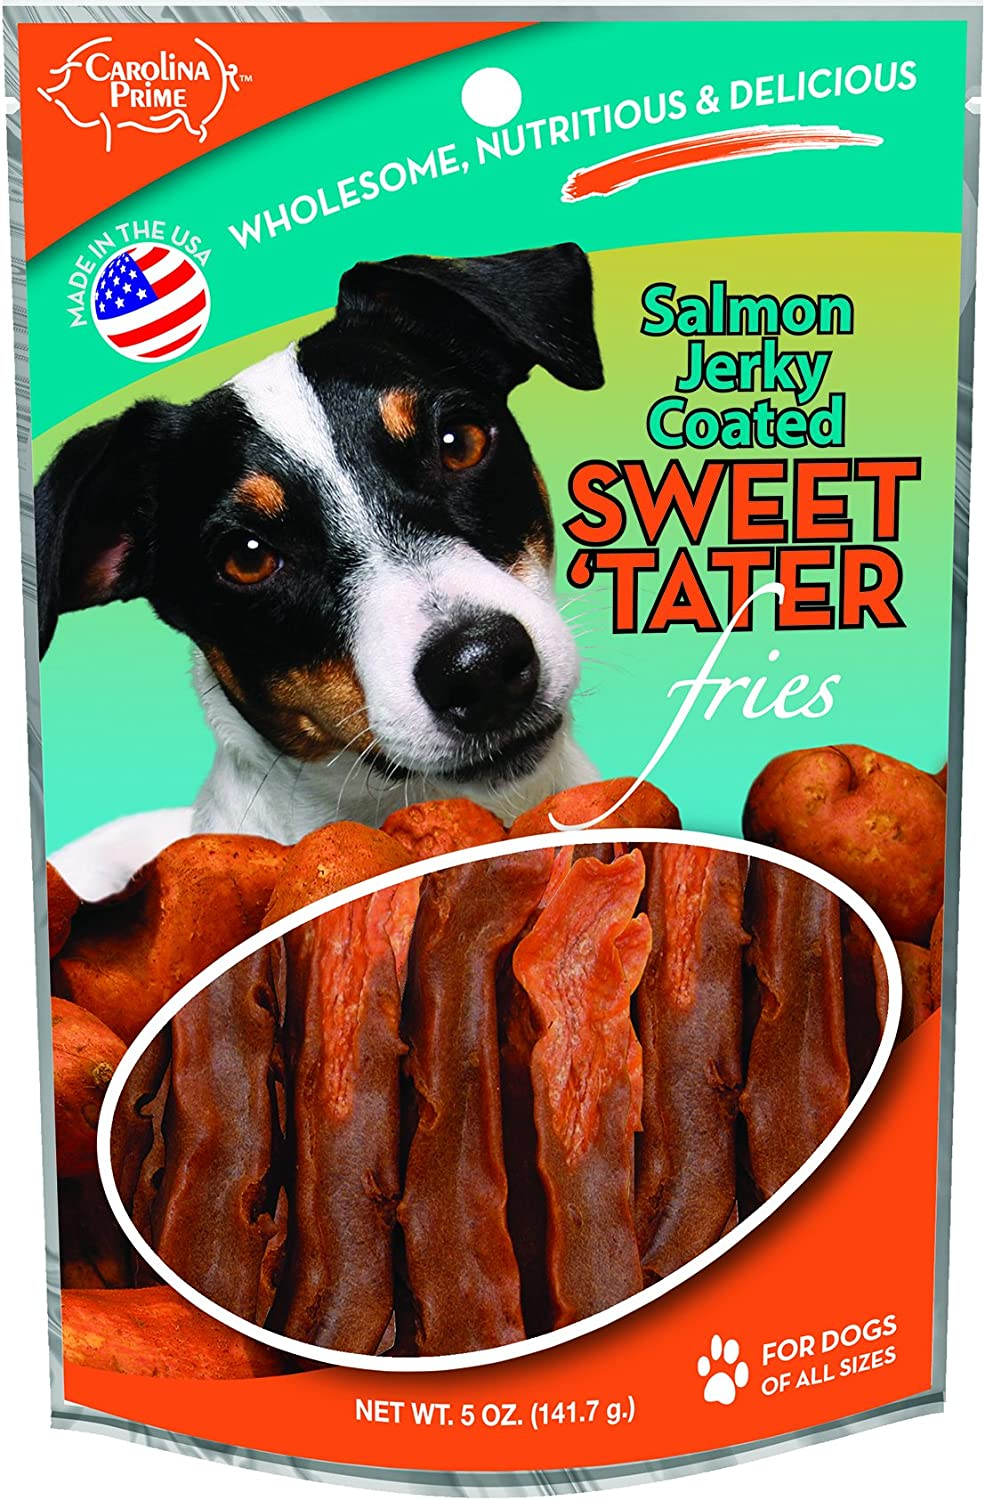 Carolina Prime Pet 45011 Salmon Coated Sweet Tater Fries Treat For Dogs ( 1 Pouch), One Size